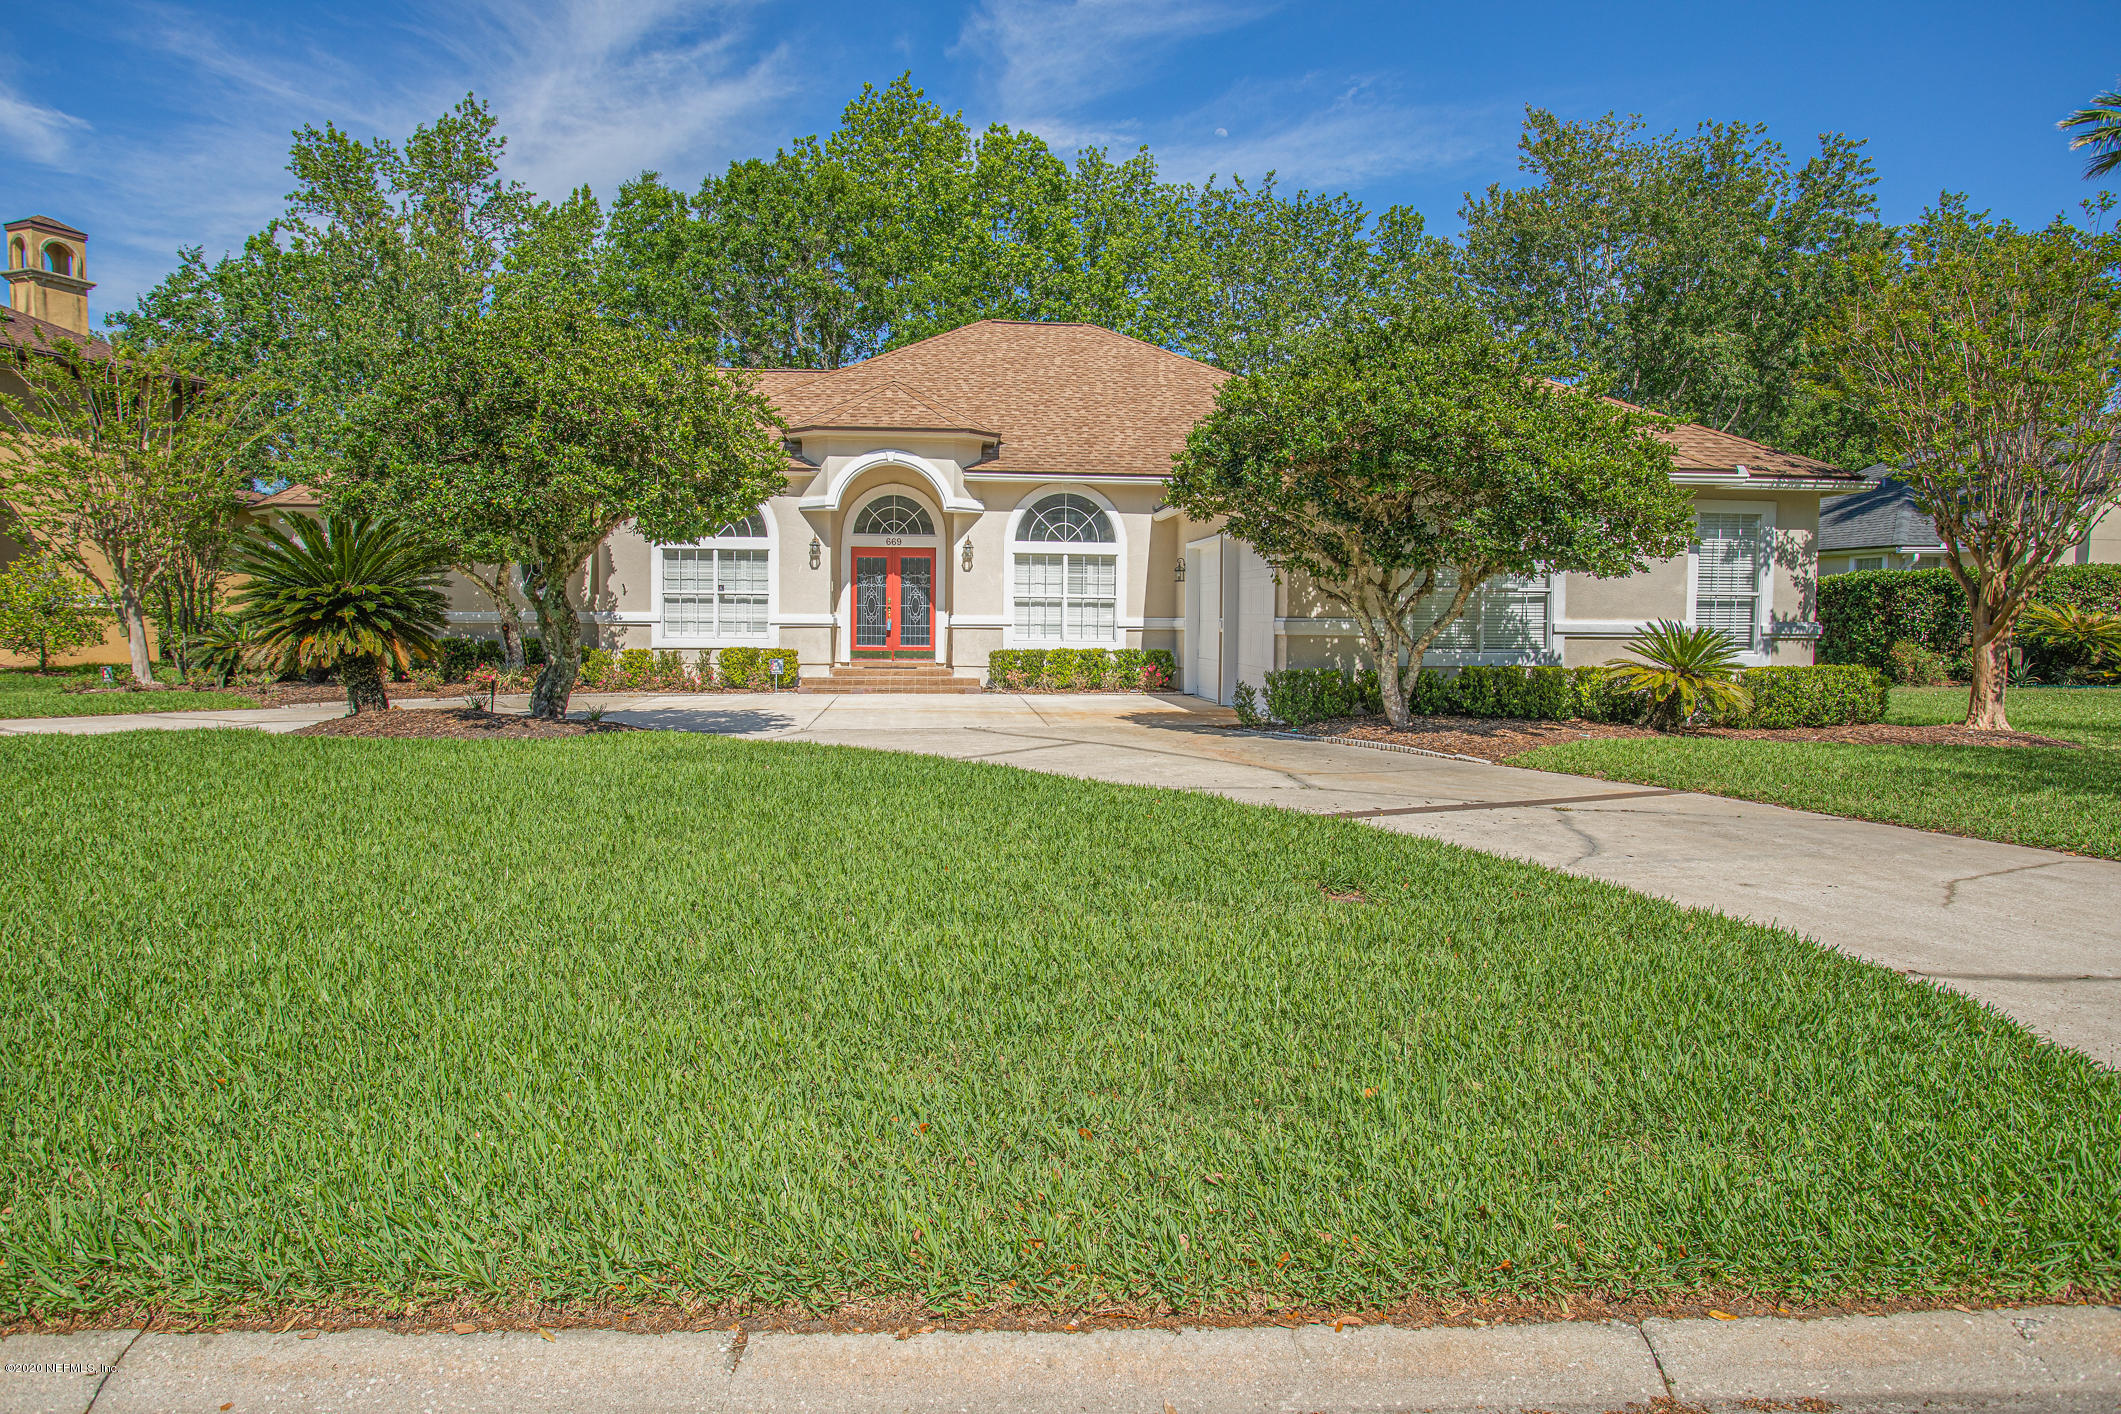 669 CHERRY GROVE, ORANGE PARK, FLORIDA 32073, 4 Bedrooms Bedrooms, ,3 BathroomsBathrooms,Residential,For sale,CHERRY GROVE,1045019